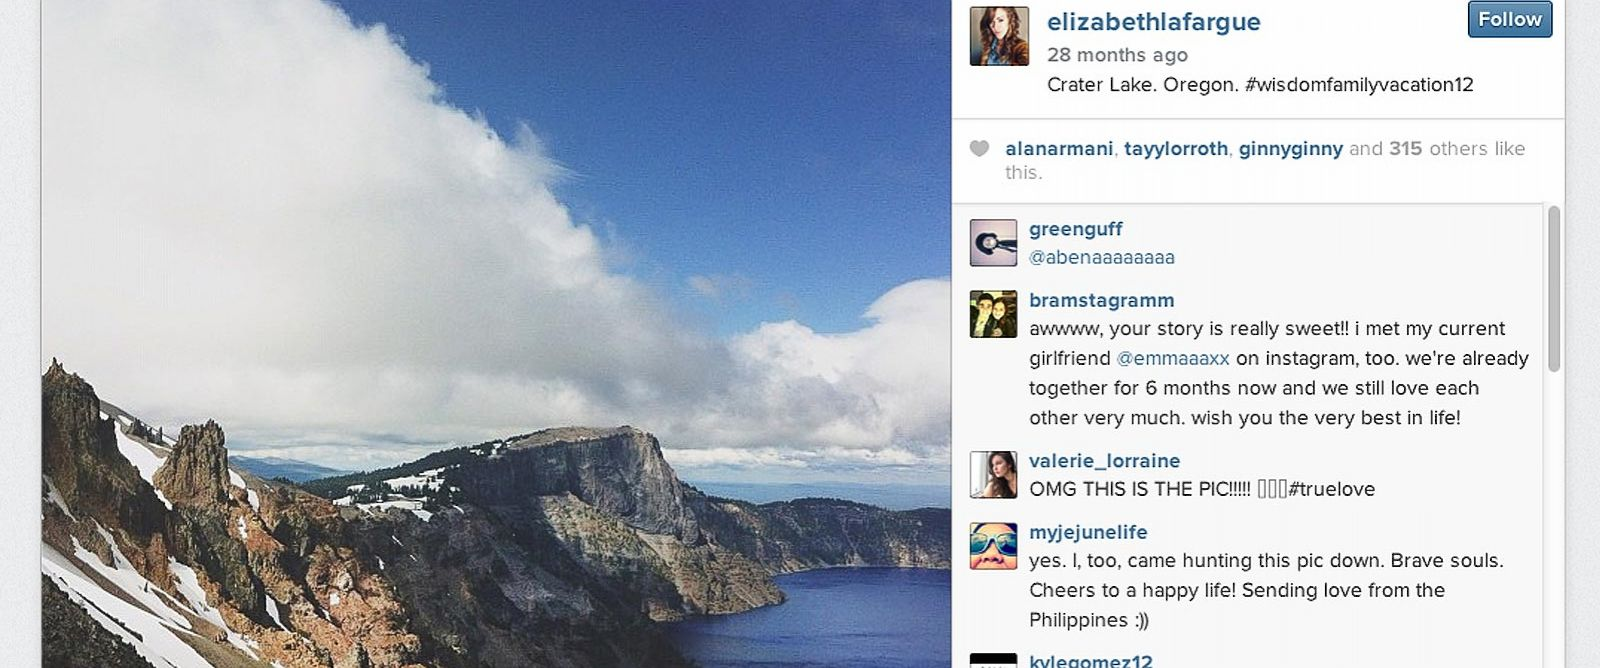 PHOTO: Denis LaFargue began commenting on Elizabeth Wisdoms Instagram feed when he recognized one of the sites she had visited on a family vacation.